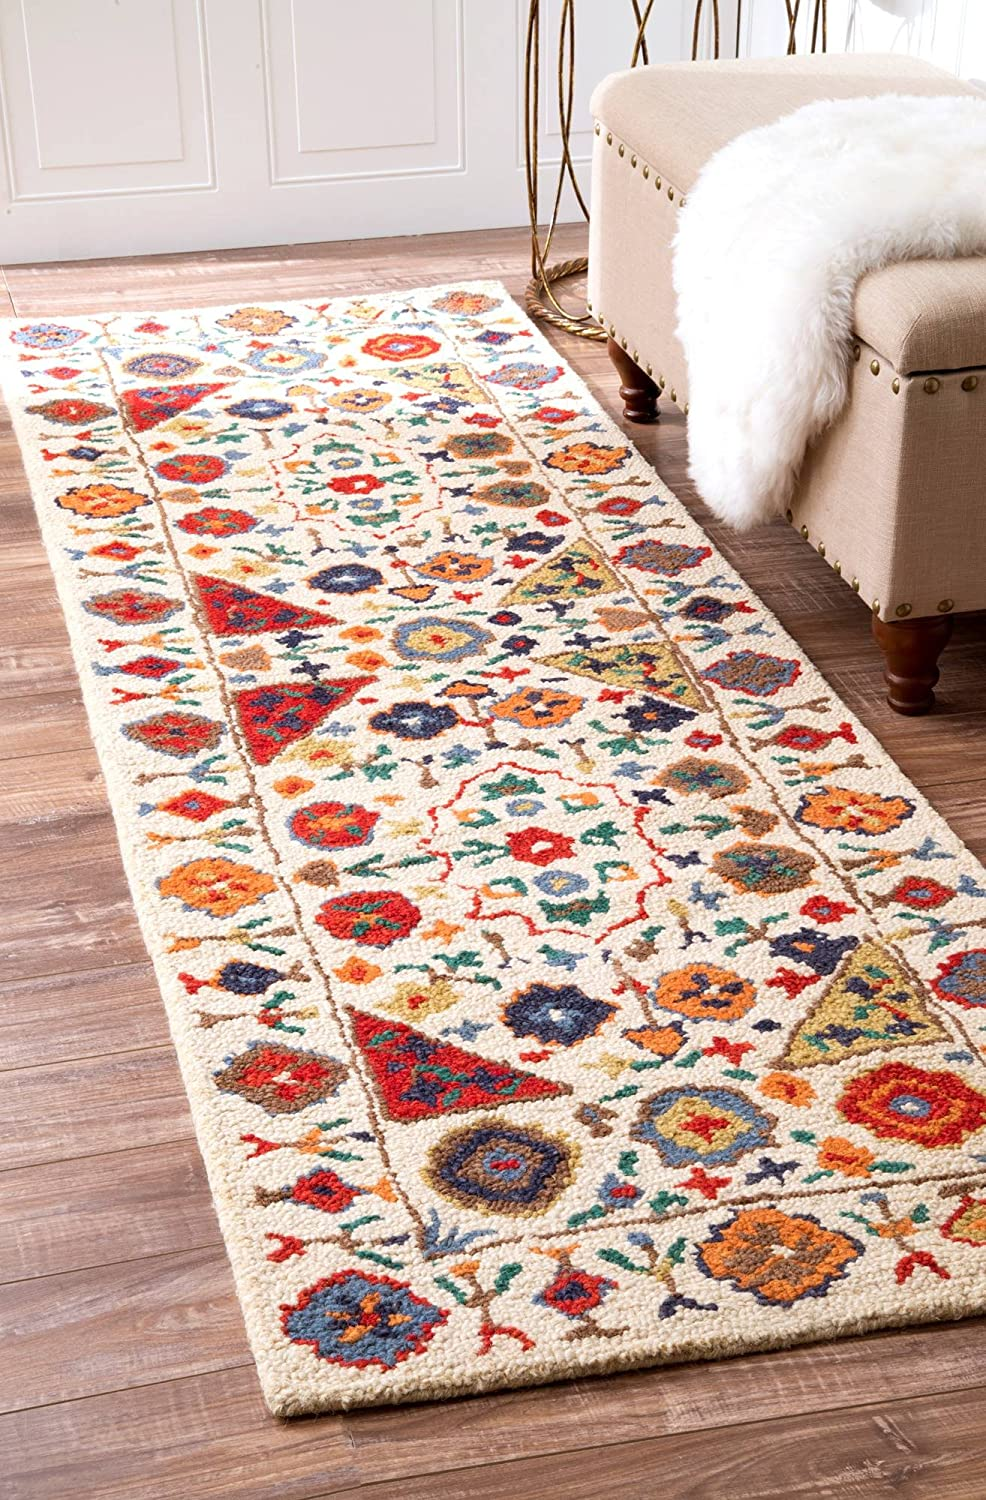 nuLOOM Deonna We OFFer at cheap prices Hand Tufted Wool Runner Cash special price 8' x Multi 6